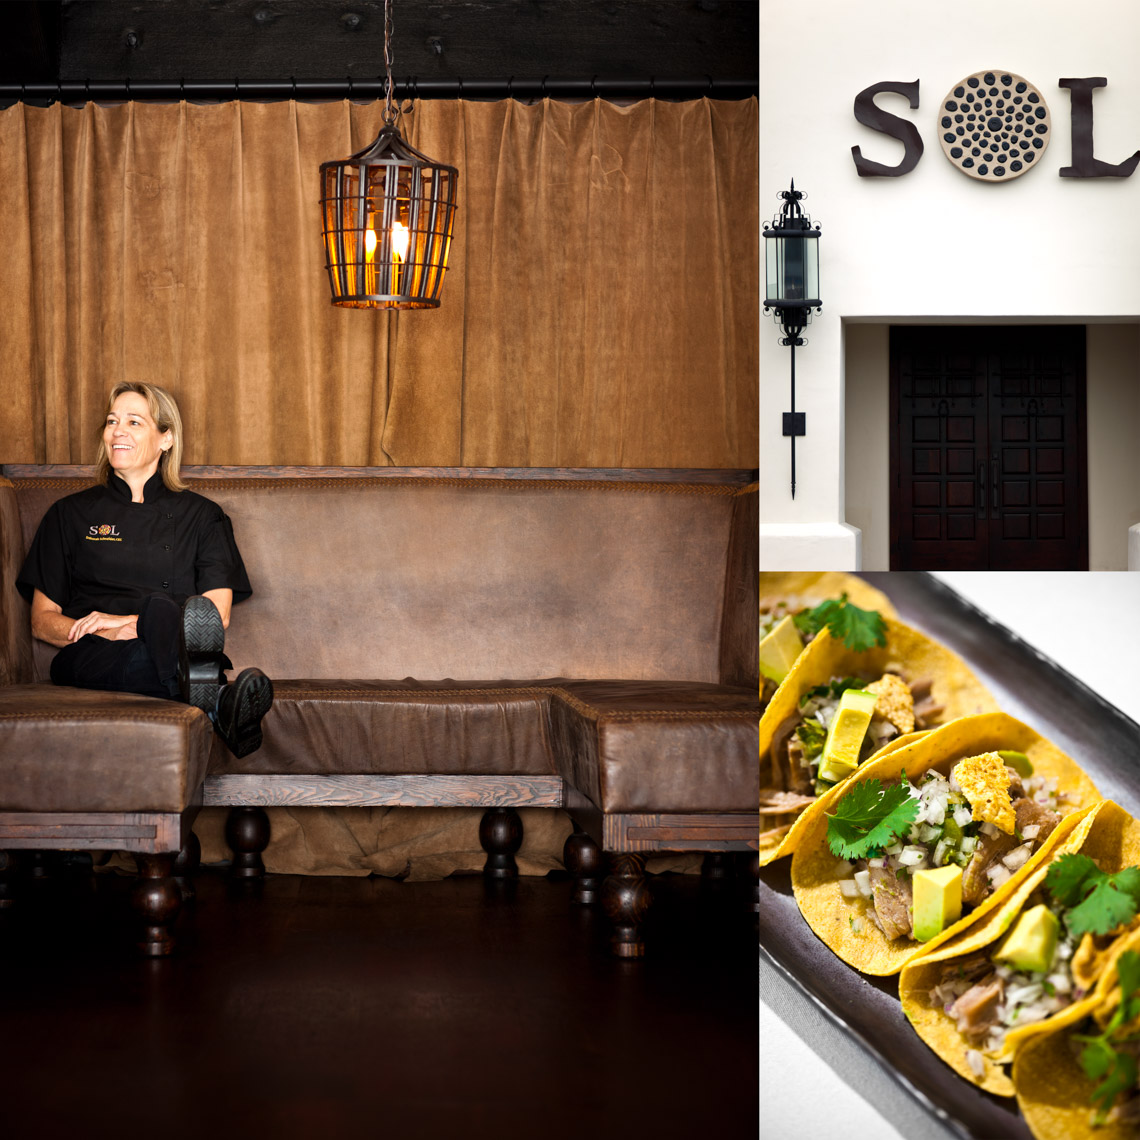 Los Angeles Photographer | Dana Hursey Photography | Top Chef Photography | Deborah Schneider - Sol